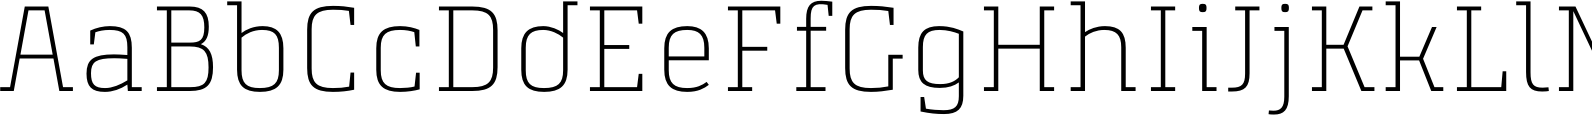 Attorney Extralight Font